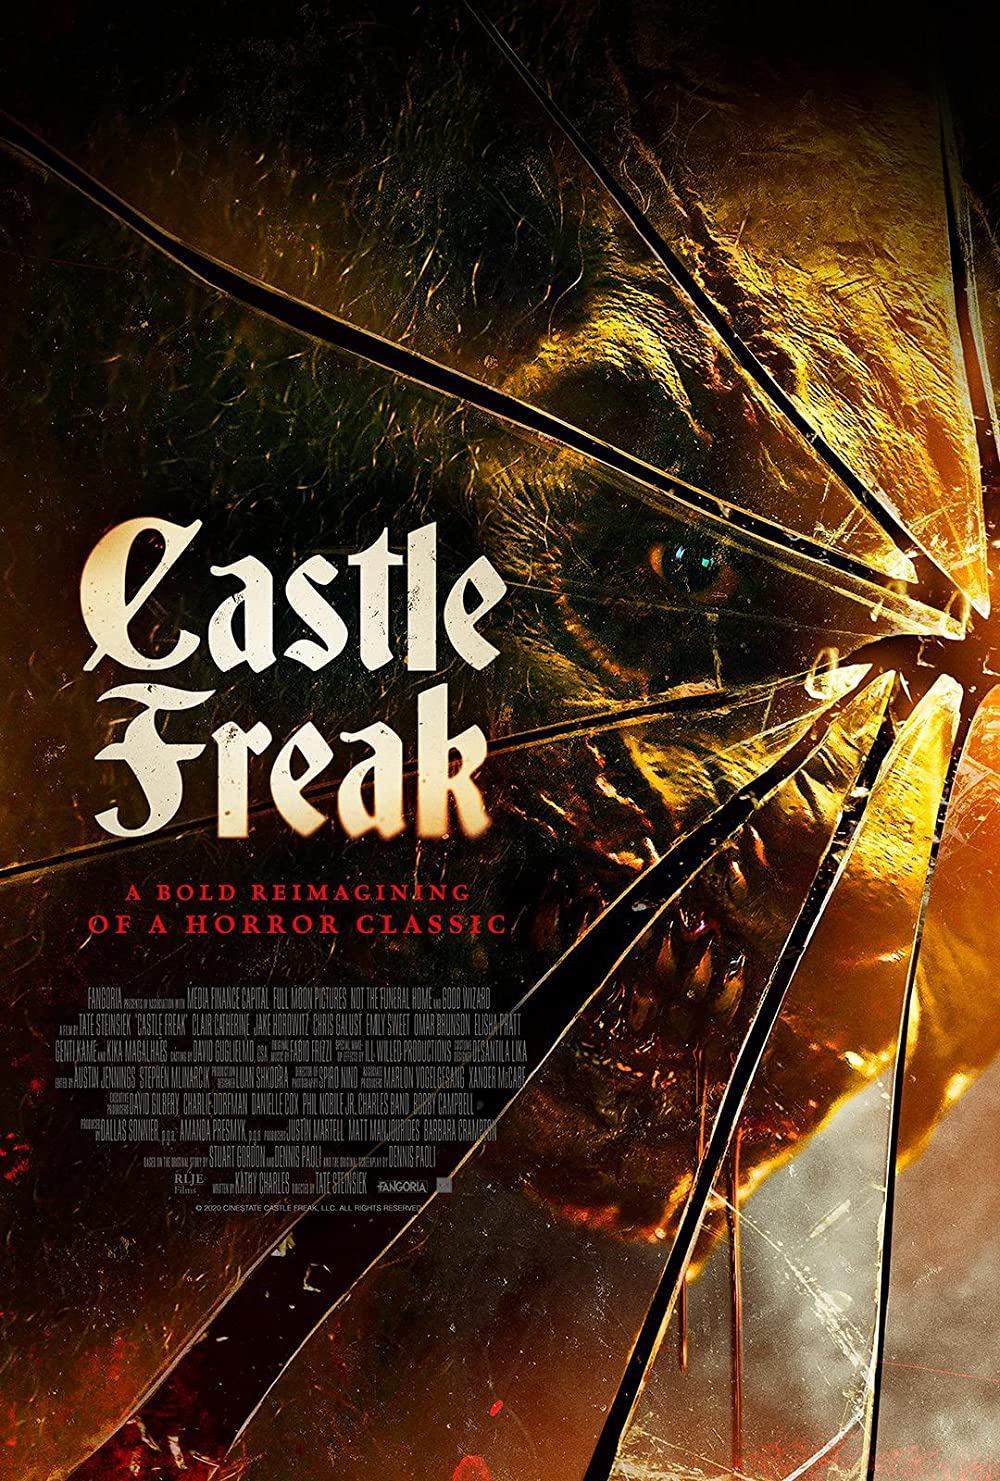 18+ Castle Freak 2020 English 1080p HDRip 1.9GB